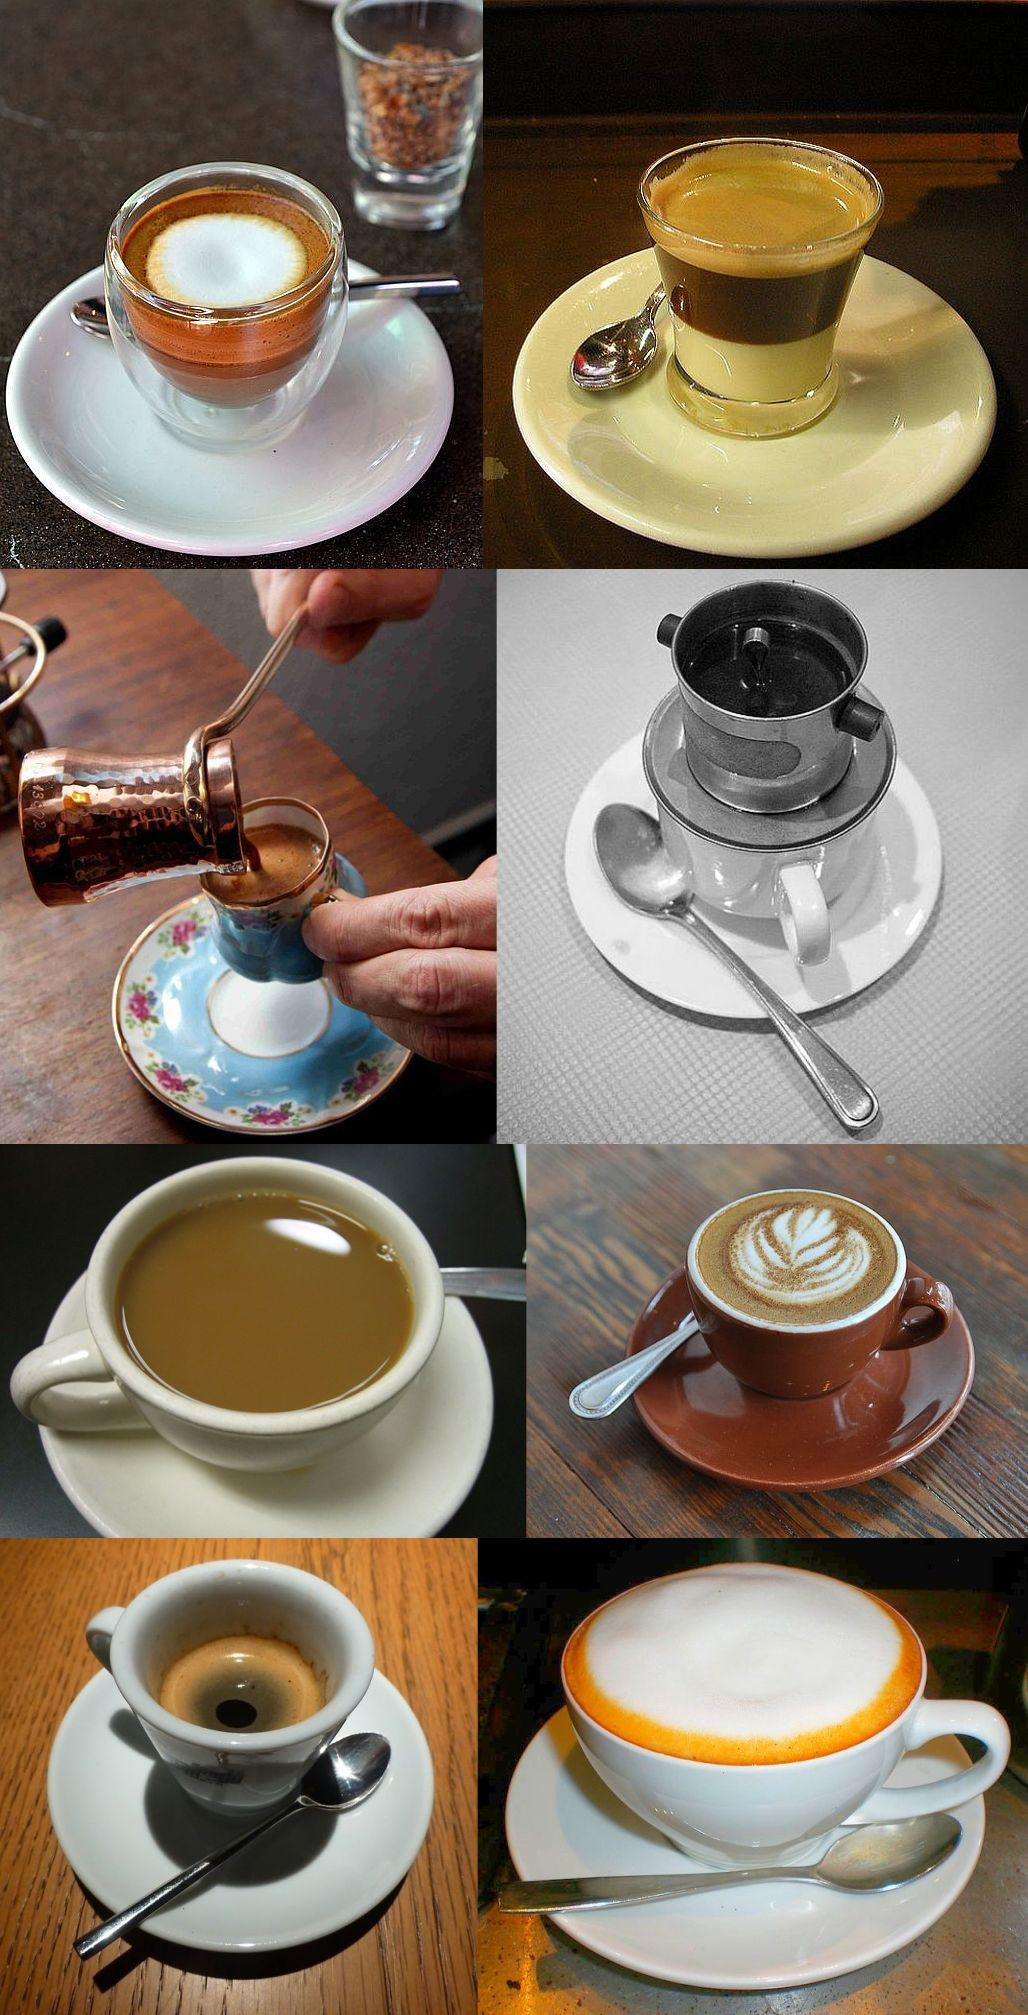 22+ Where does coffee beans come from in the world ideas